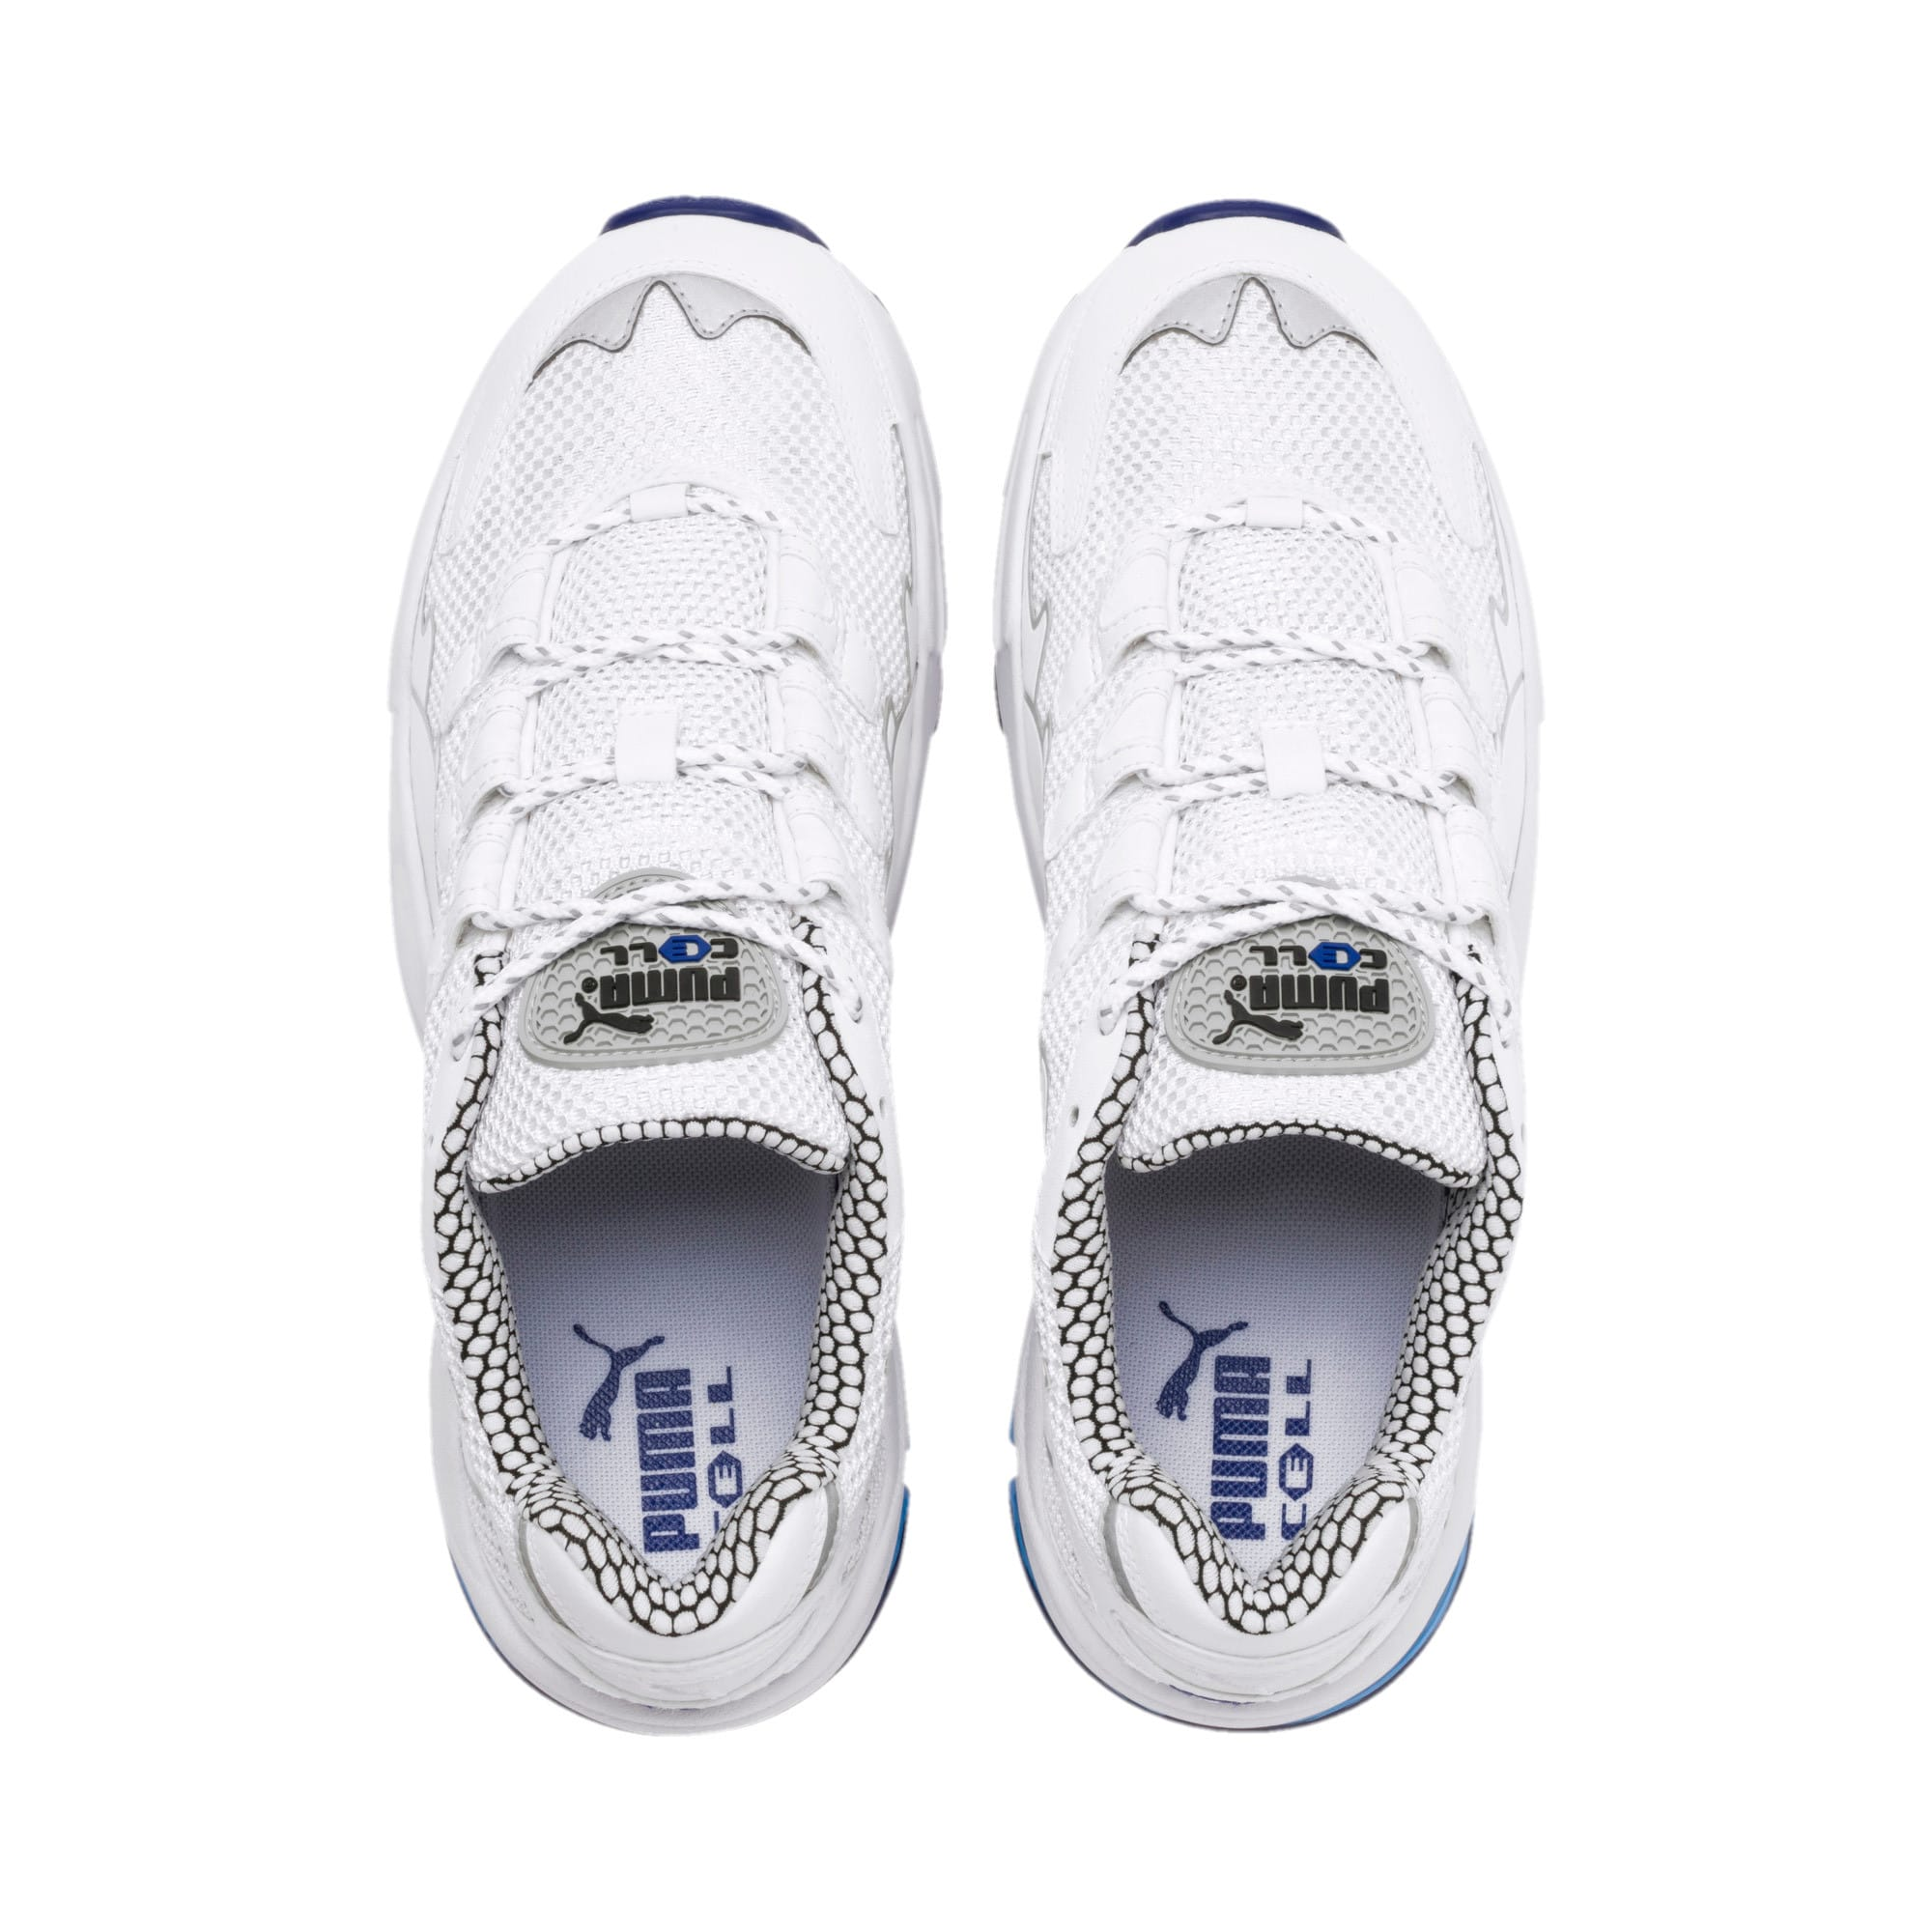 Thumbnail 7 of CELL Alien Kotto Trainers, Puma White-Puma White, medium